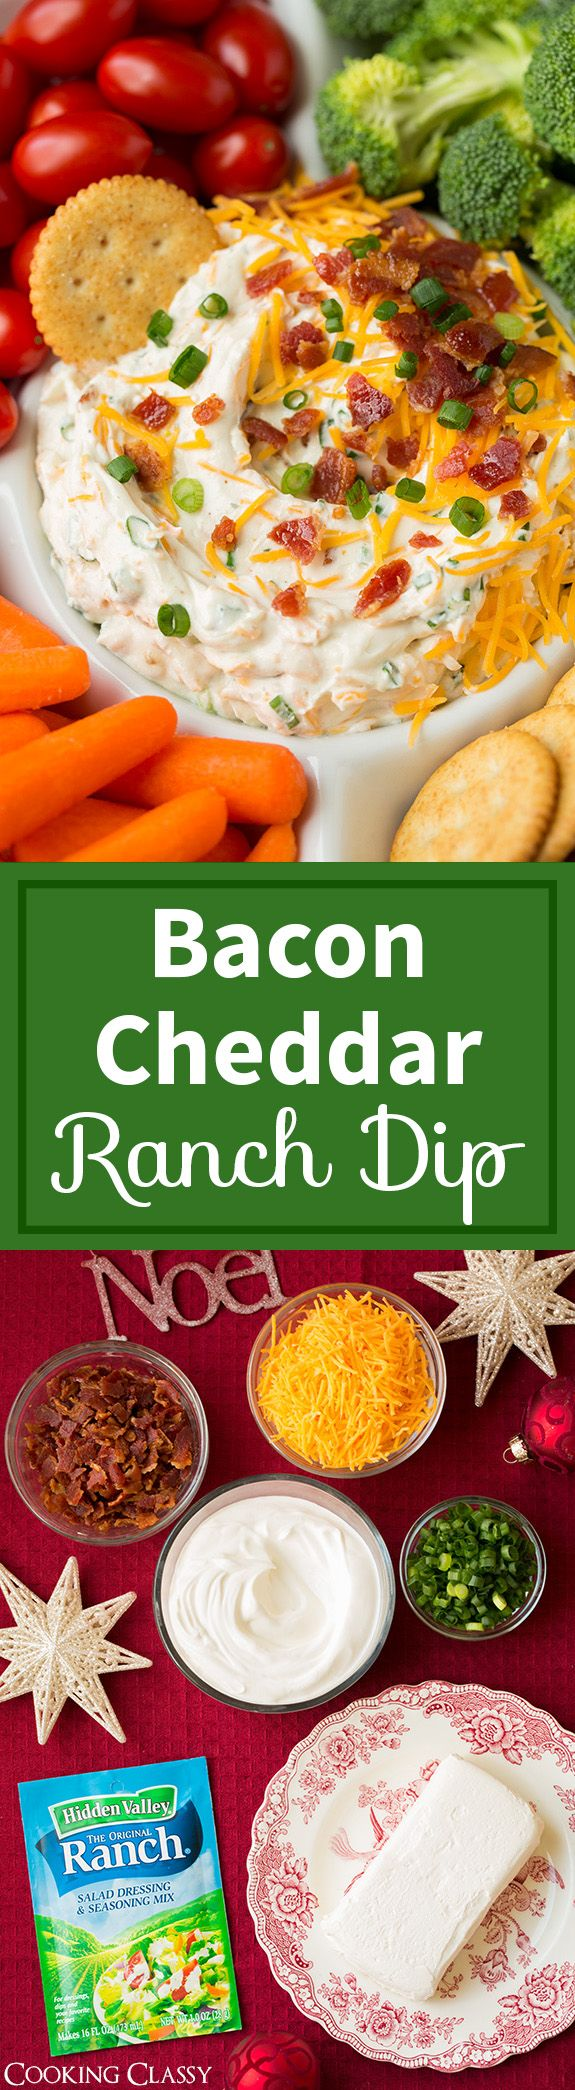 Bacon Cheddar Ranch Dip - 6 ingredients and a breeze to make! This stuff is dangerous!! I kept reaching into my fridge for more, too good to resist. Served it at a party and it was a total hit!